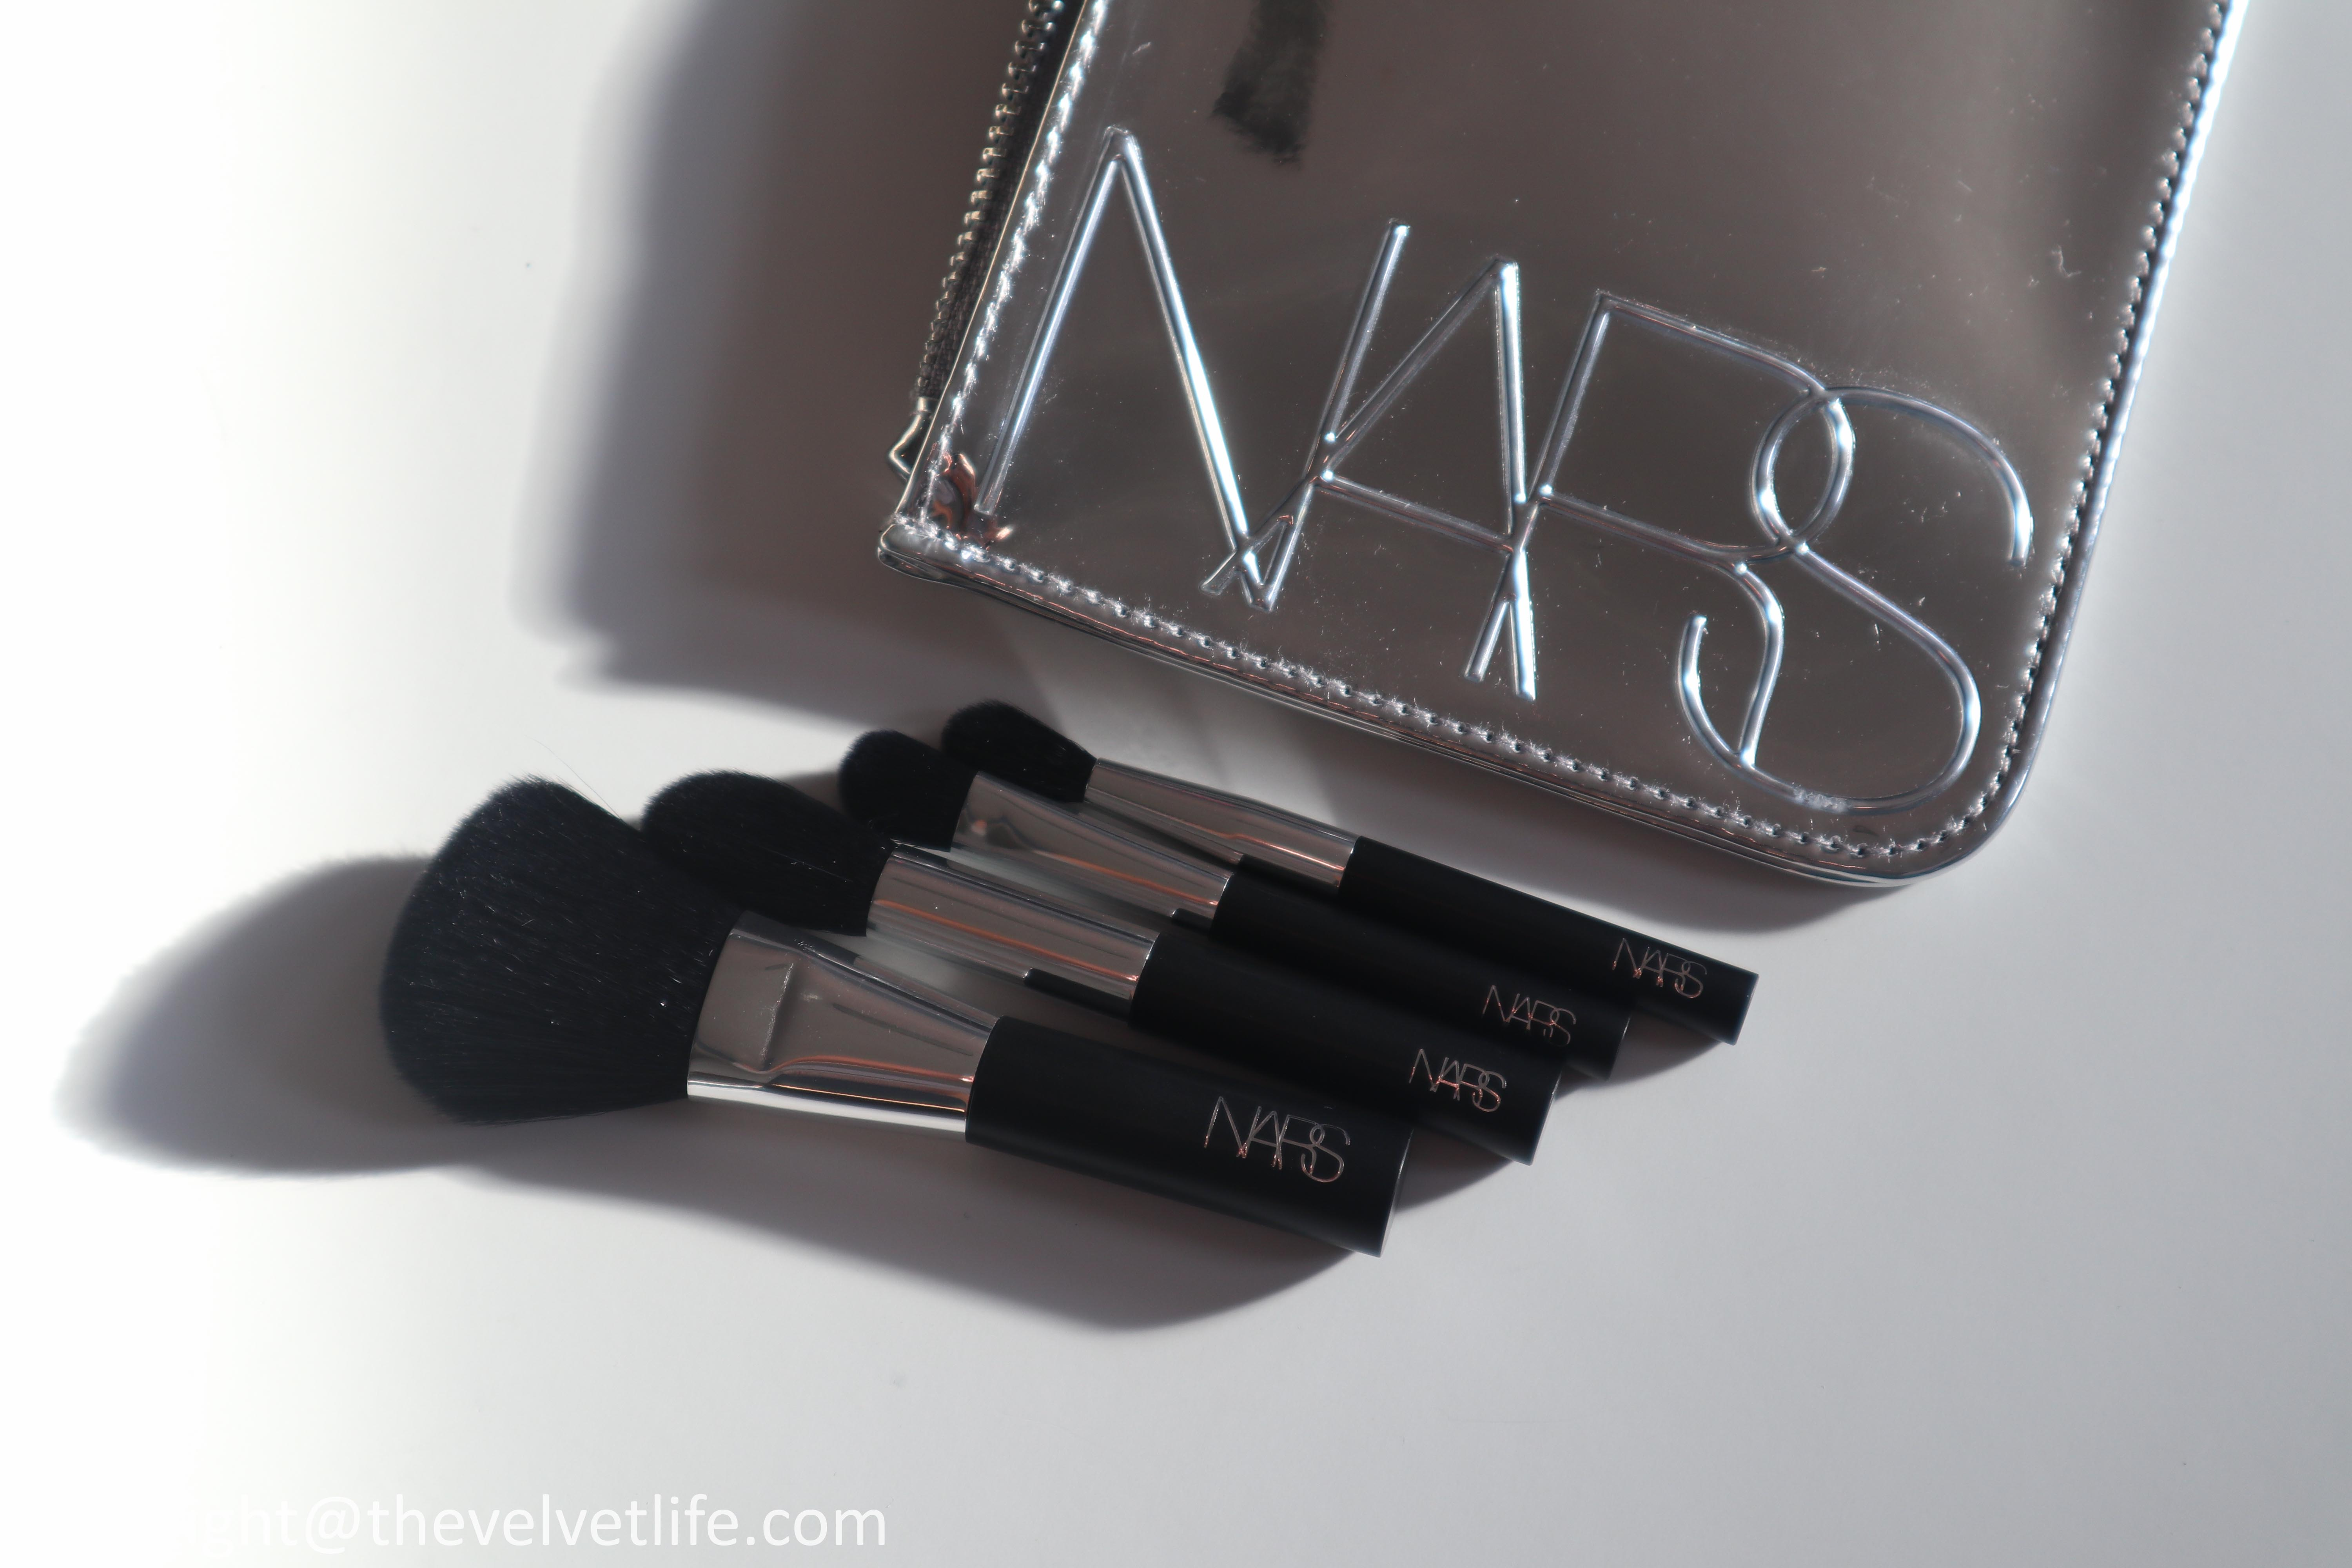 Nars Holiday 2020 collection review swatches Iconic Glow Cheek Duo, Undress Code Lip Balm Set, VIP Audacious Lipstick, and Mini Brush Set